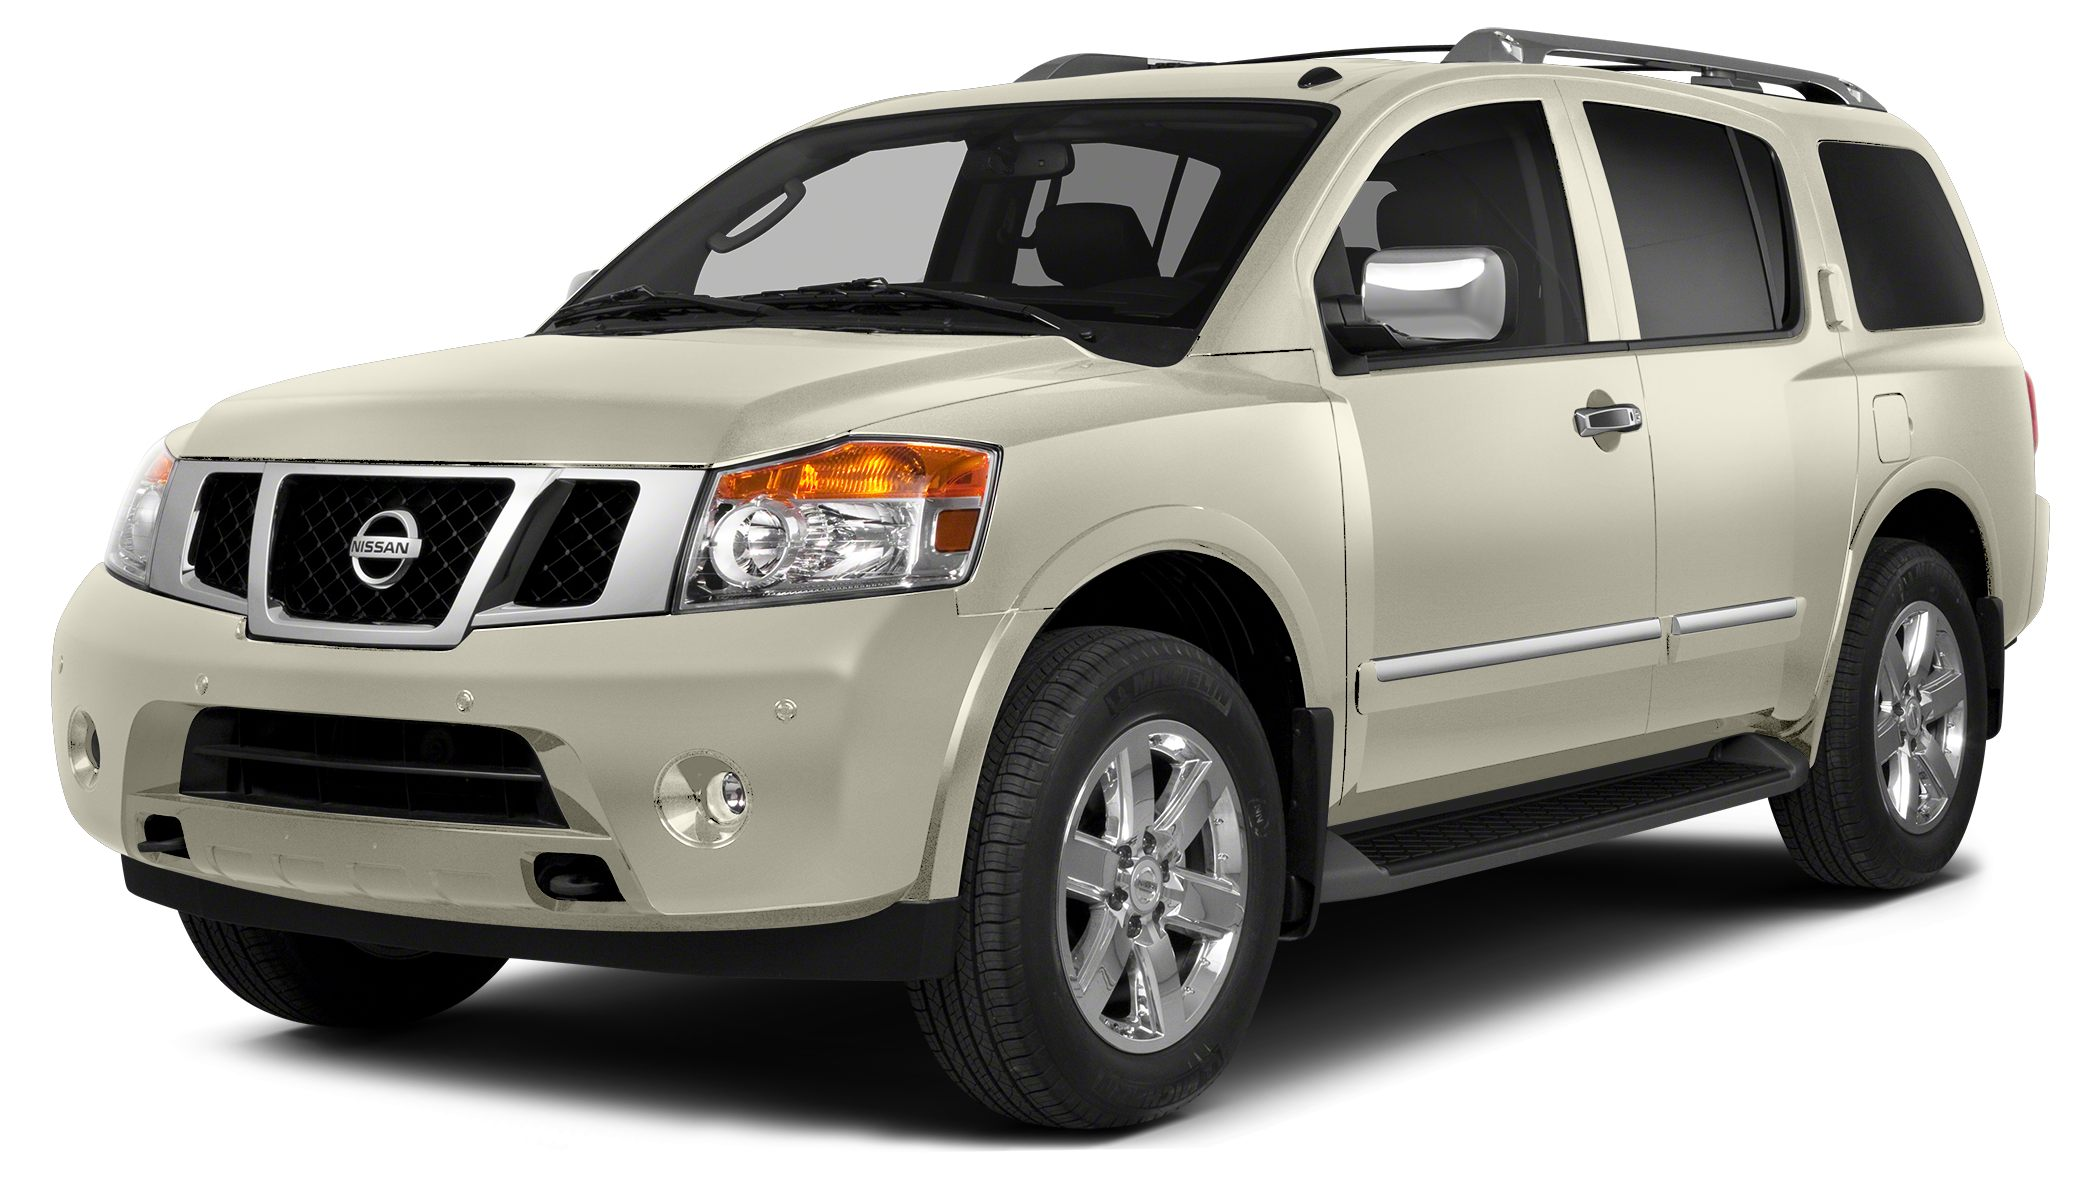 2015 Nissan Armada SL 2015 Nissan Armada Priced below MSRP Climb into savings with our special